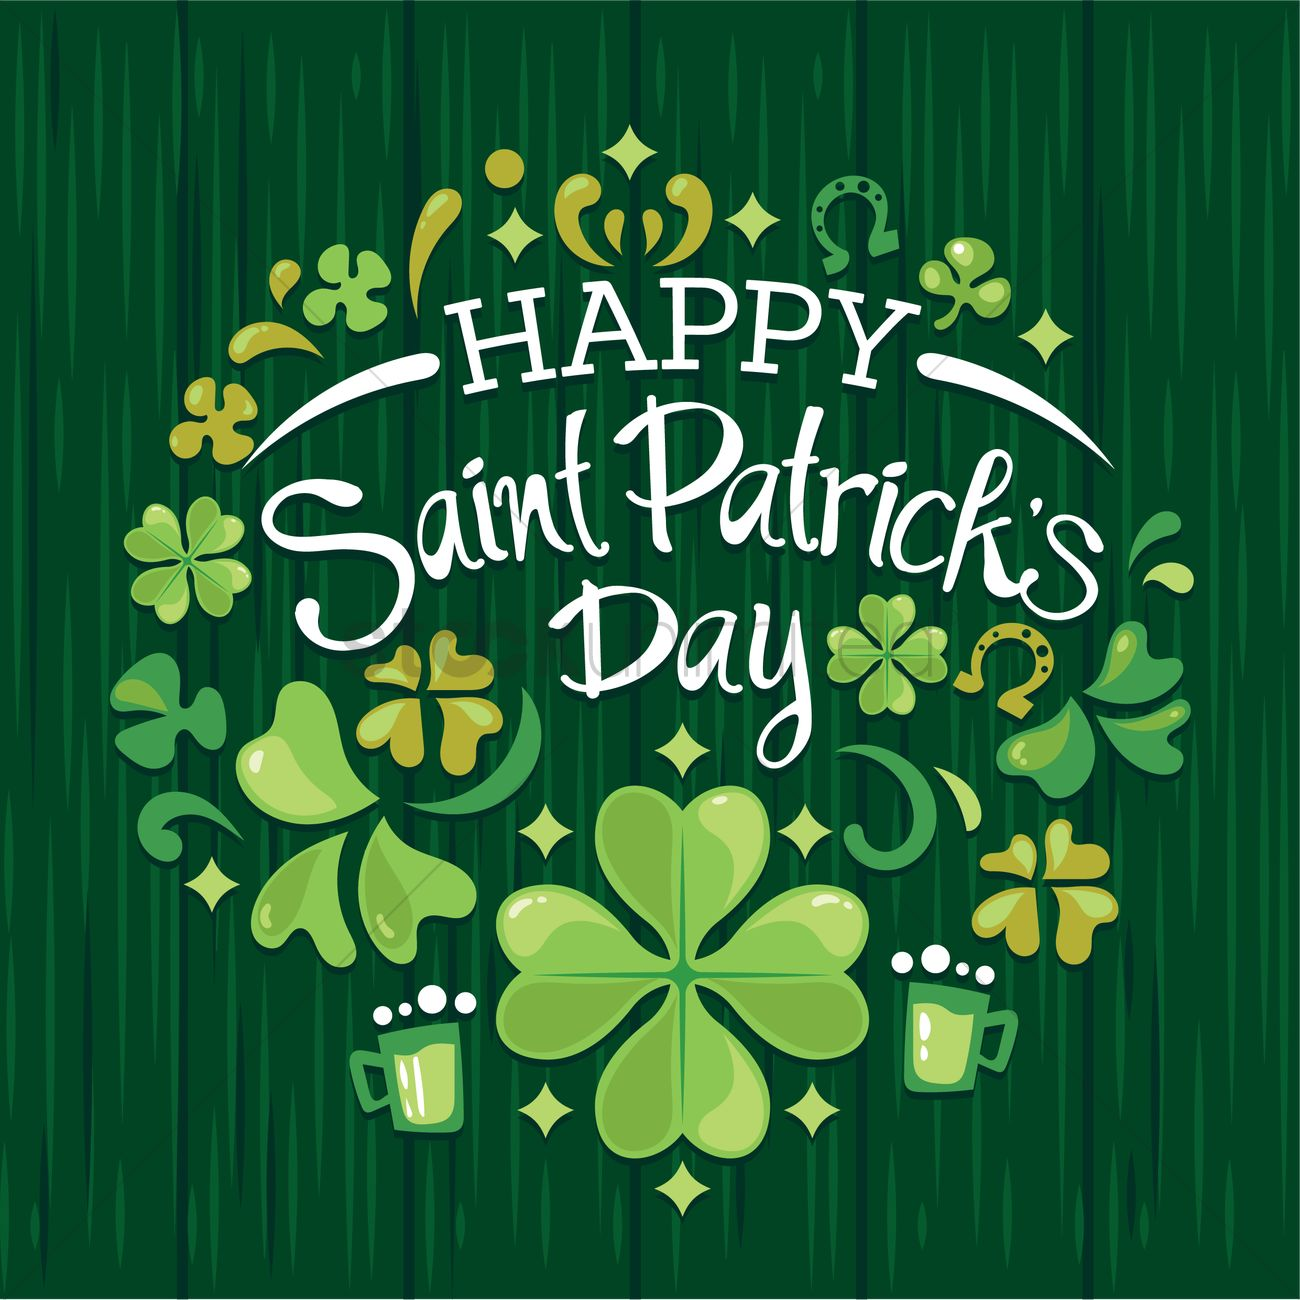 Happy st patricks day Vector Image  1991597  StockUnlimited